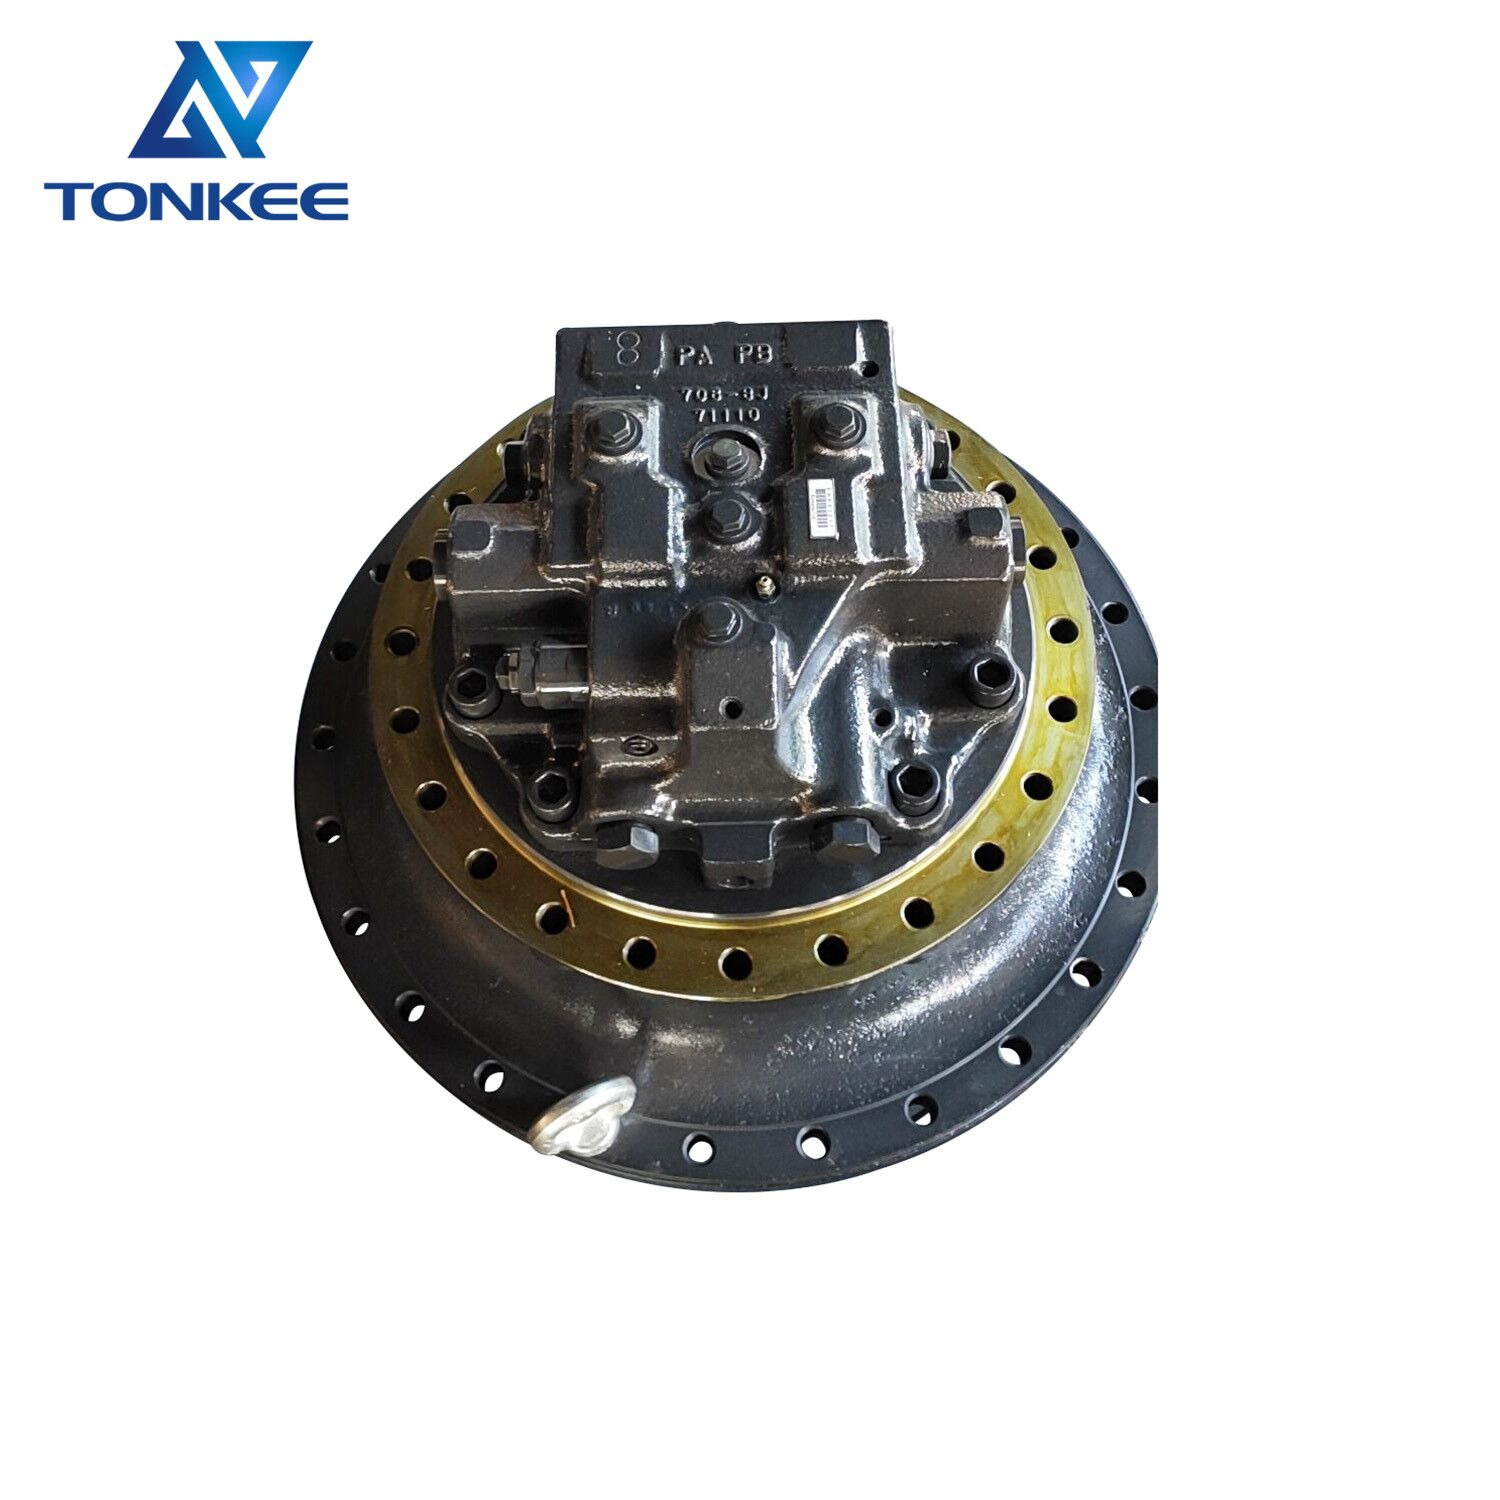 new PC400-7 PC400-8 excavator final drive assembly 208-27-00243 208-27-00281 208-27-00280 208-27-00250 706-8J-01020 travel motor assy suitable for KOMATSU